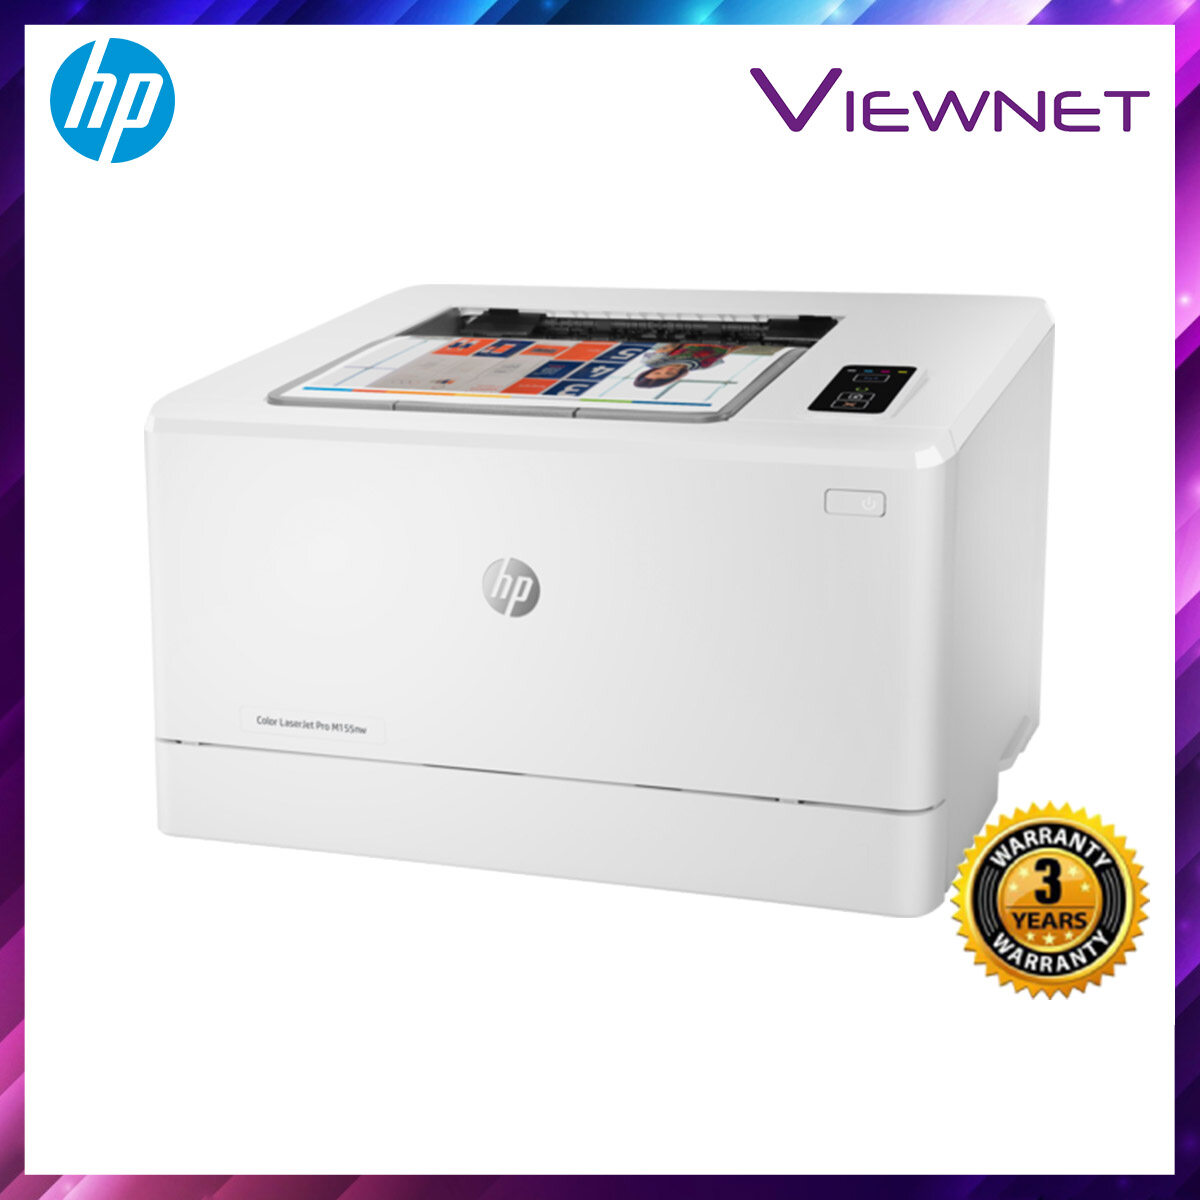 HP Color LaserJet Pro M155nw 3 Years Onsite Warranty with 1-to-1 Unit exchange **NEED TO ONLINE REGISTER**